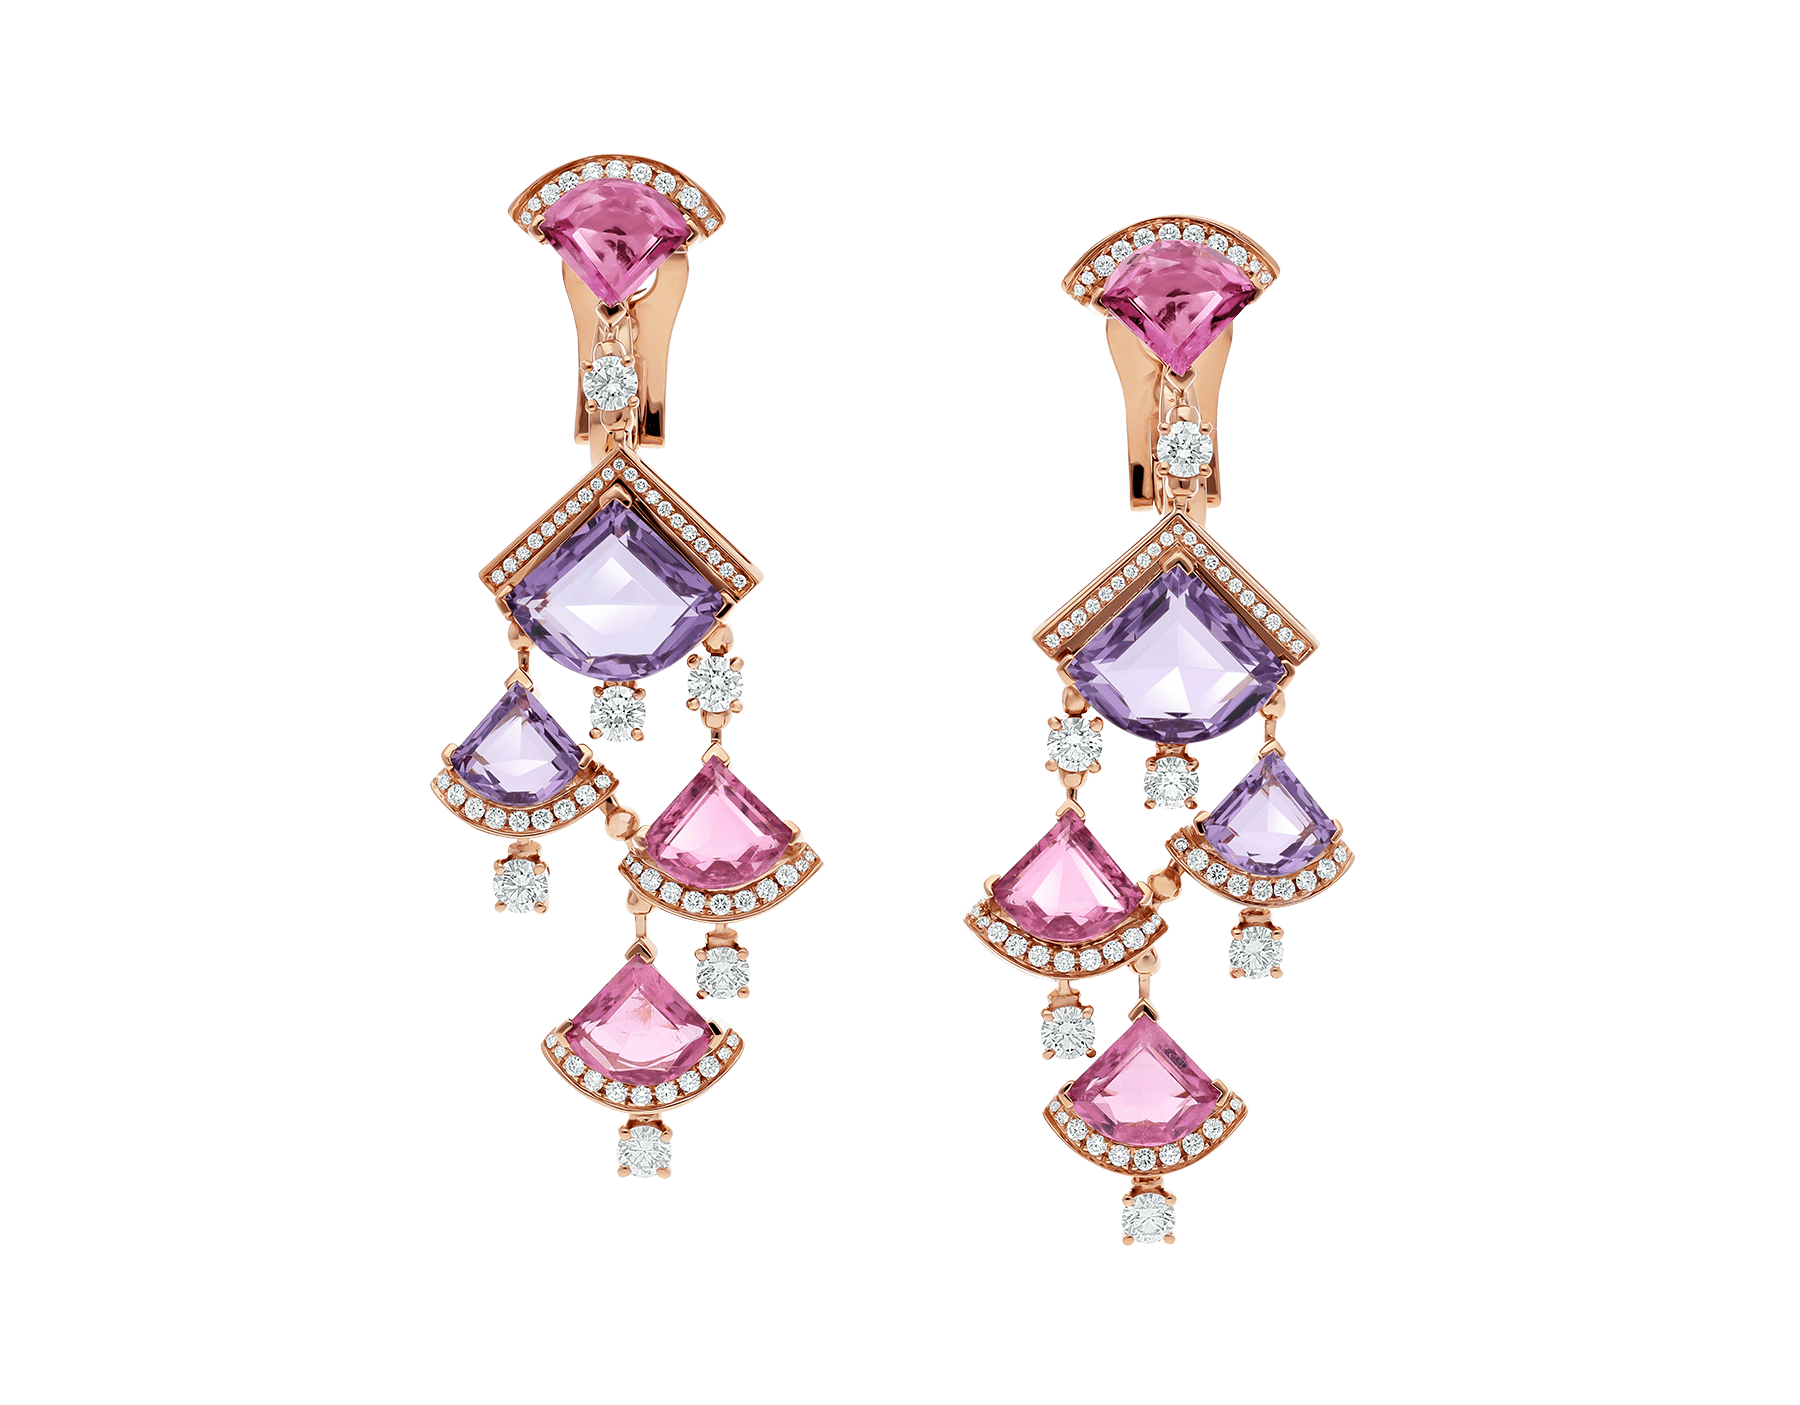 DIVAS' DREAM earrings in 18 kt rose gold, set with pink rubellite, amethyst and pavé diamonds. 354078 image 1